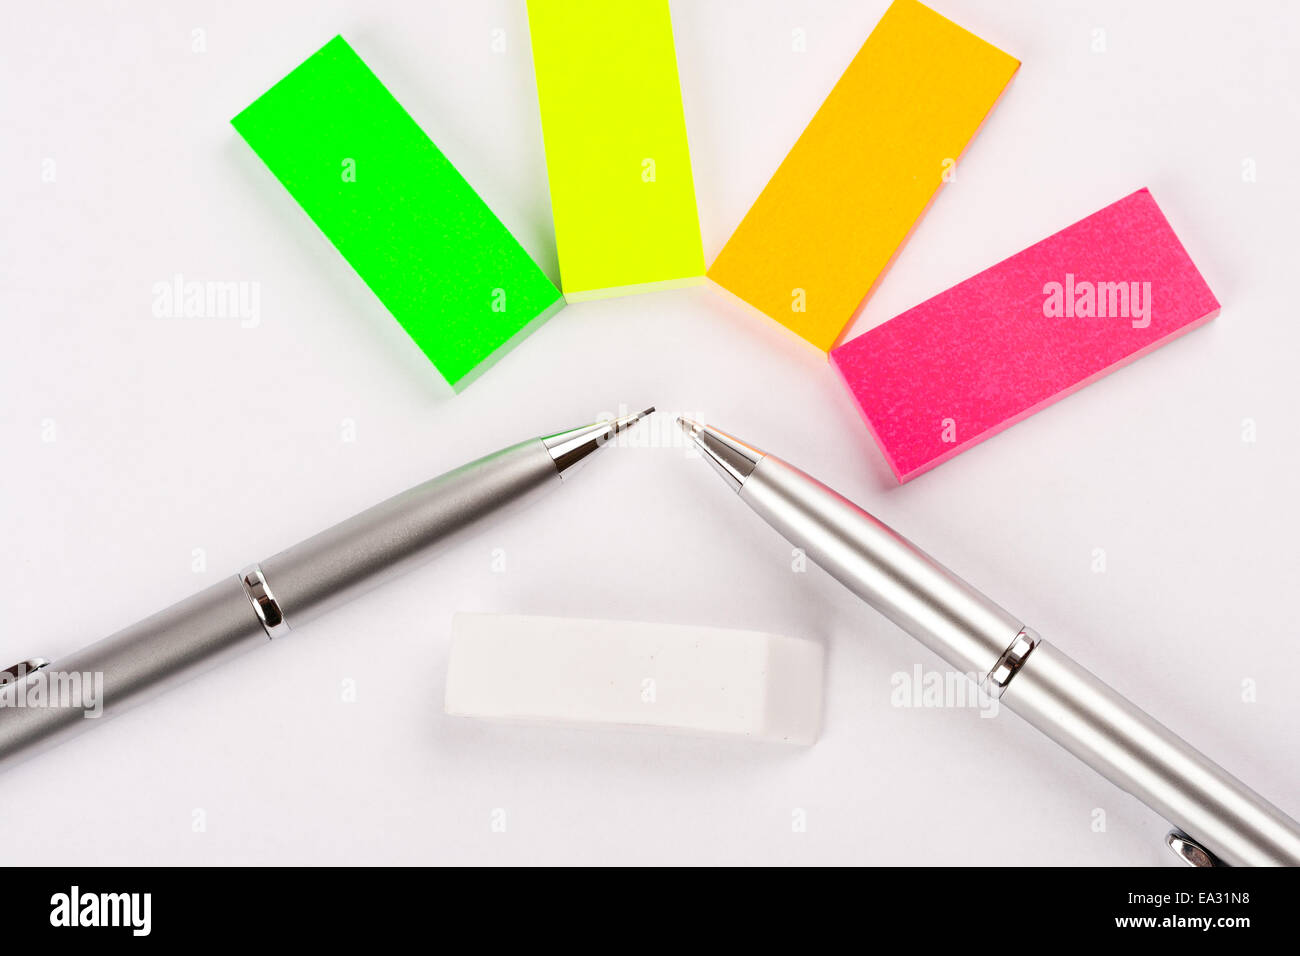 Postit and pens - Stock Image